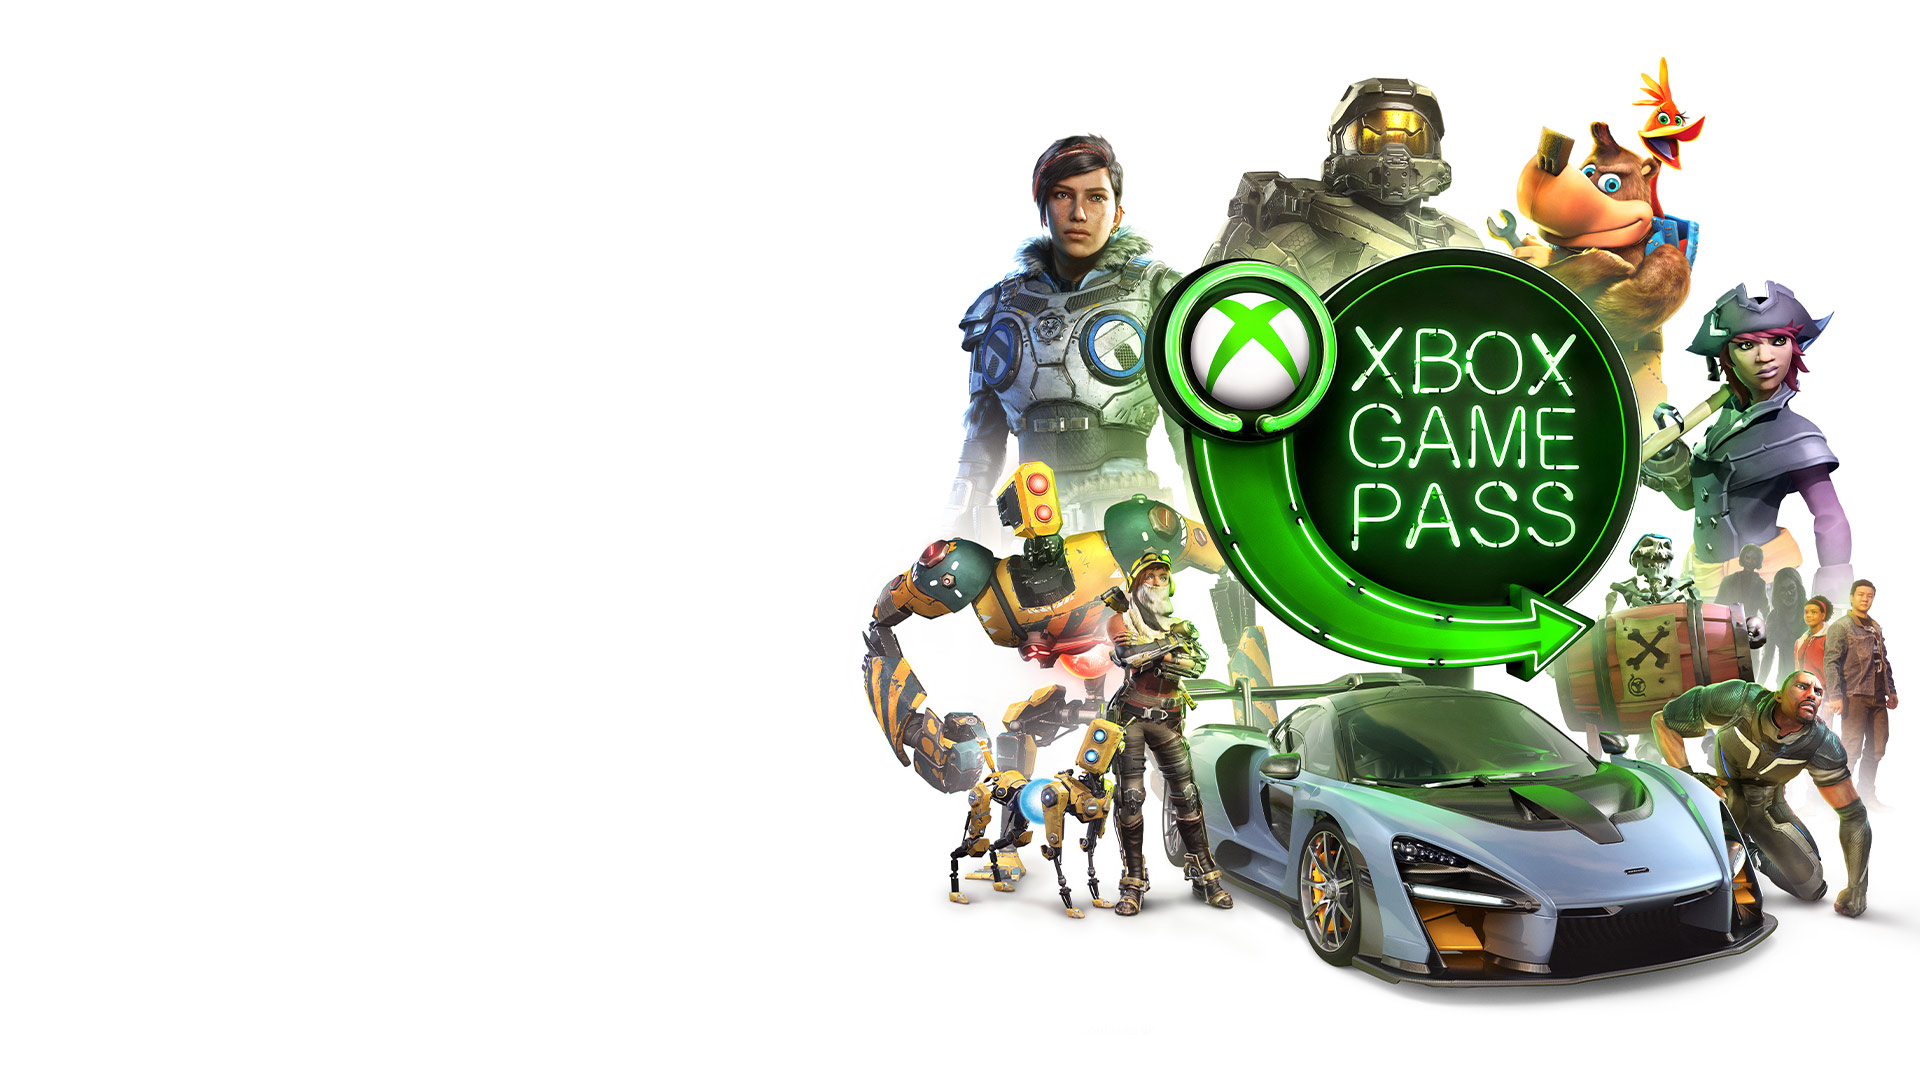 Game characters from Gears of War, Halo, Sea of Thieves, ReCore, and a McLaren supercar surrounding the Xbox Game Pass neon sign logo.